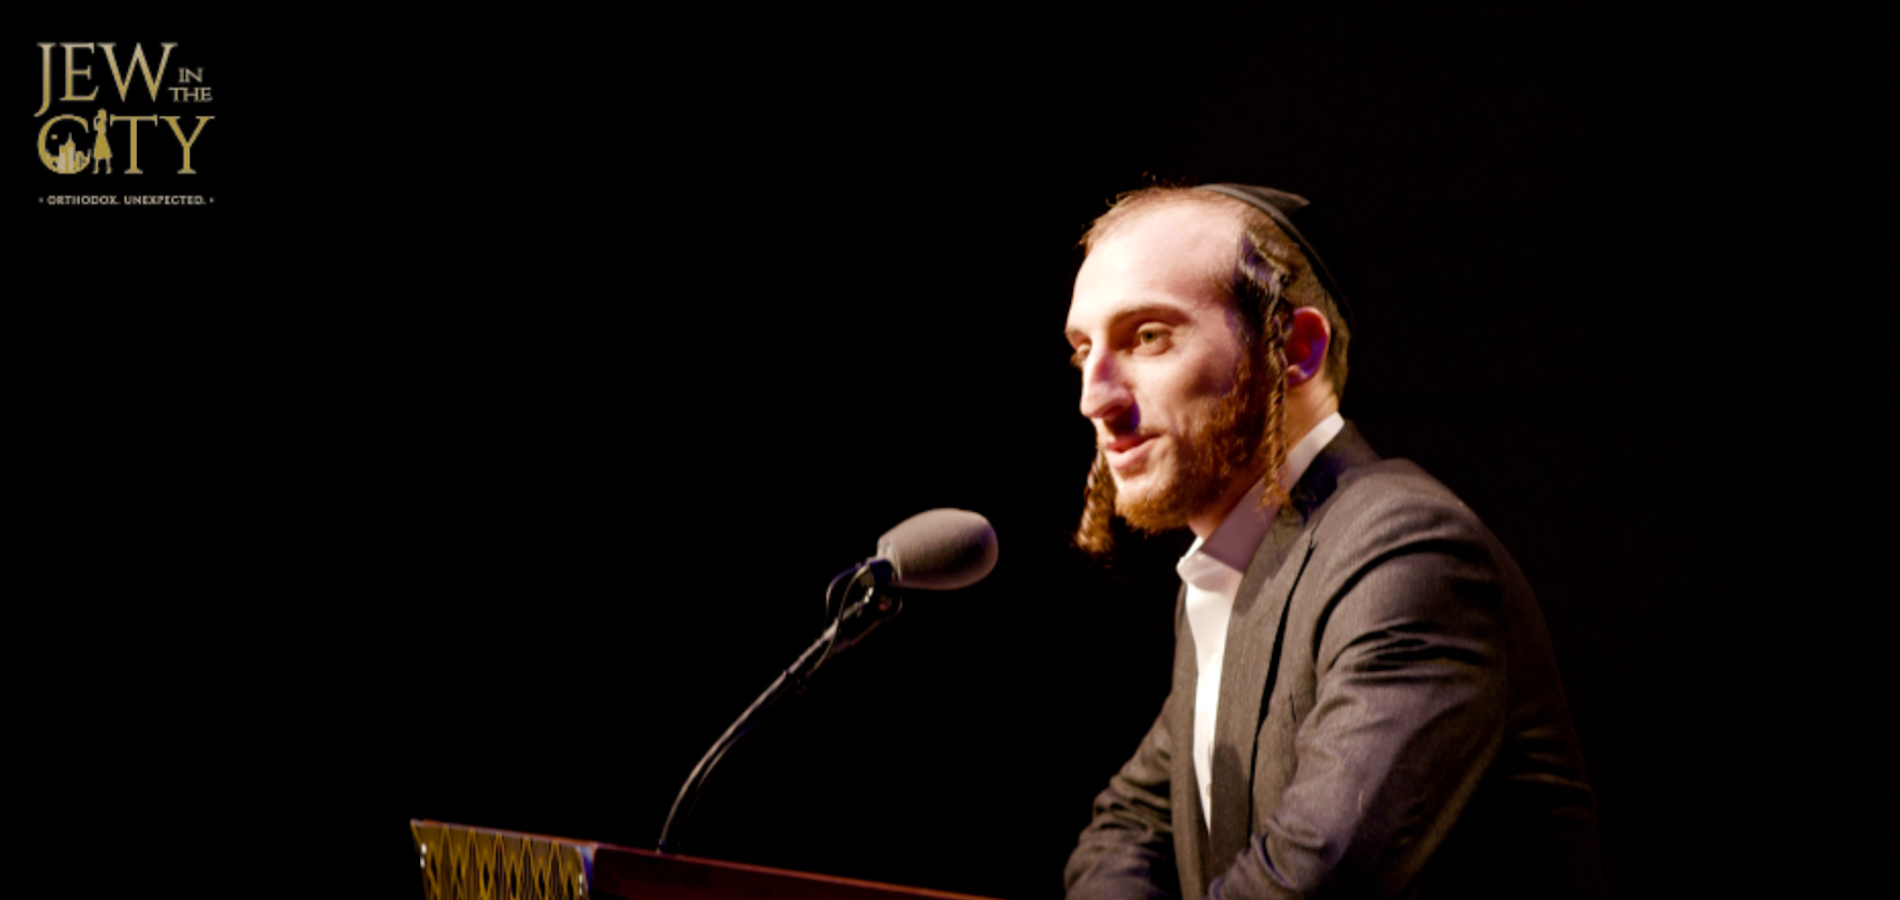 First Born Hasidic Jew to Sign With a Major Record Label, Shulem Lemmer, Accepts All Star Award